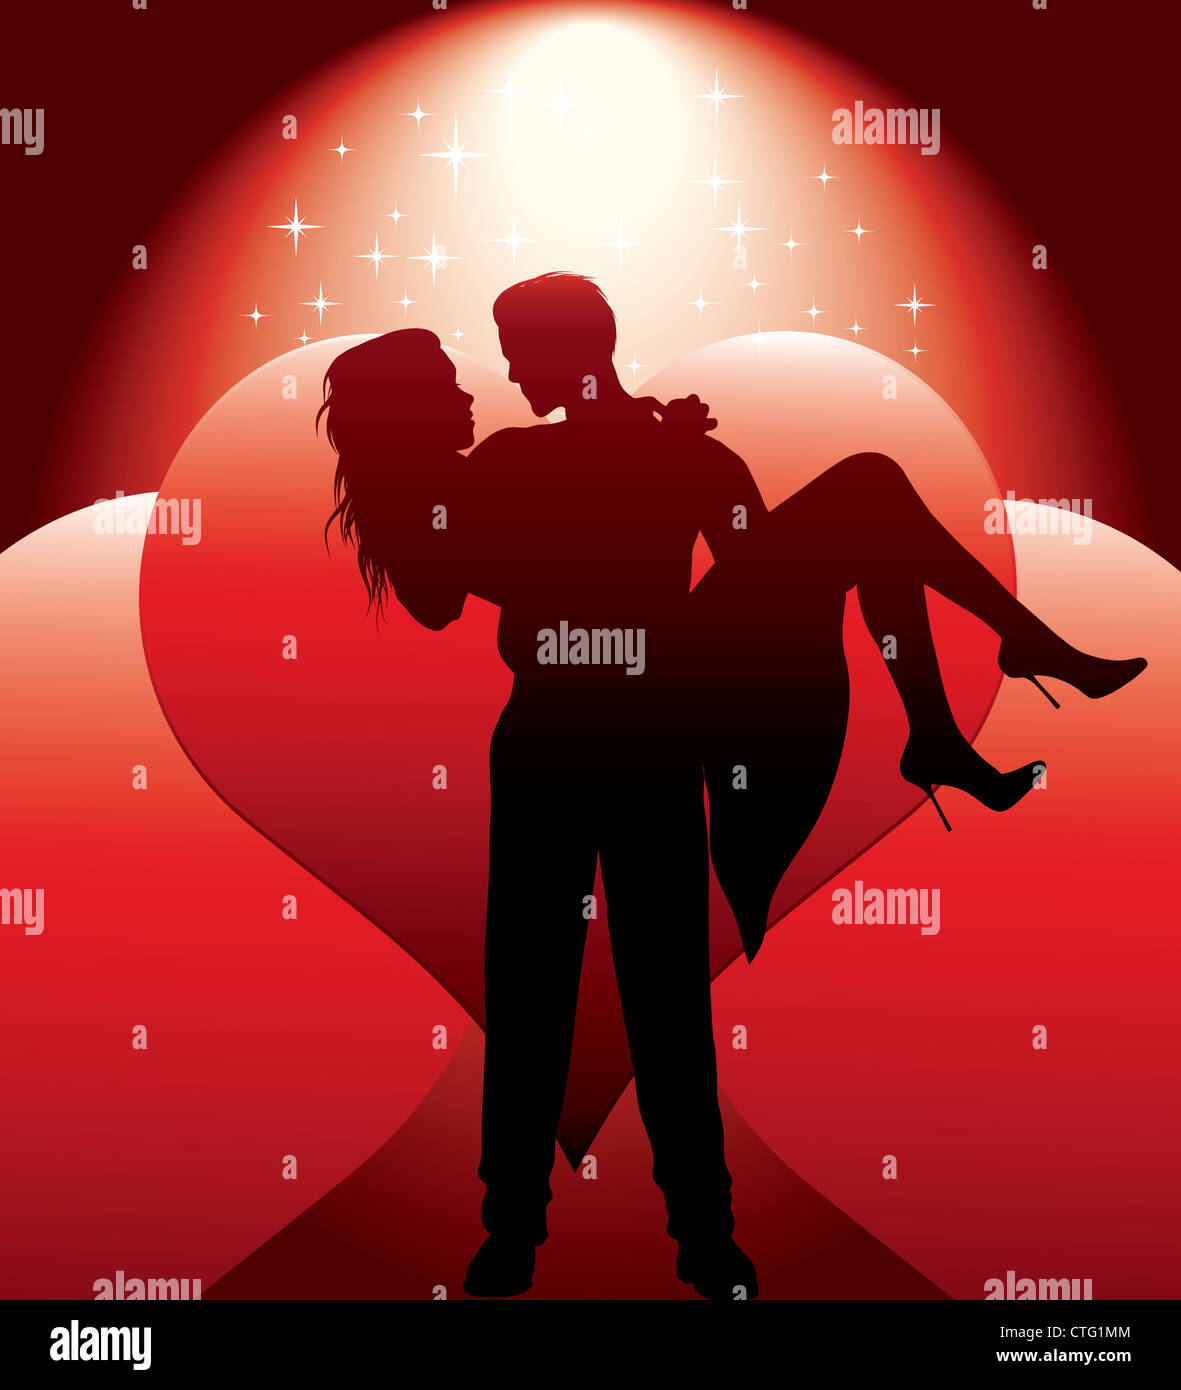 couple silhouette with hearts vector illustration Stock Photo